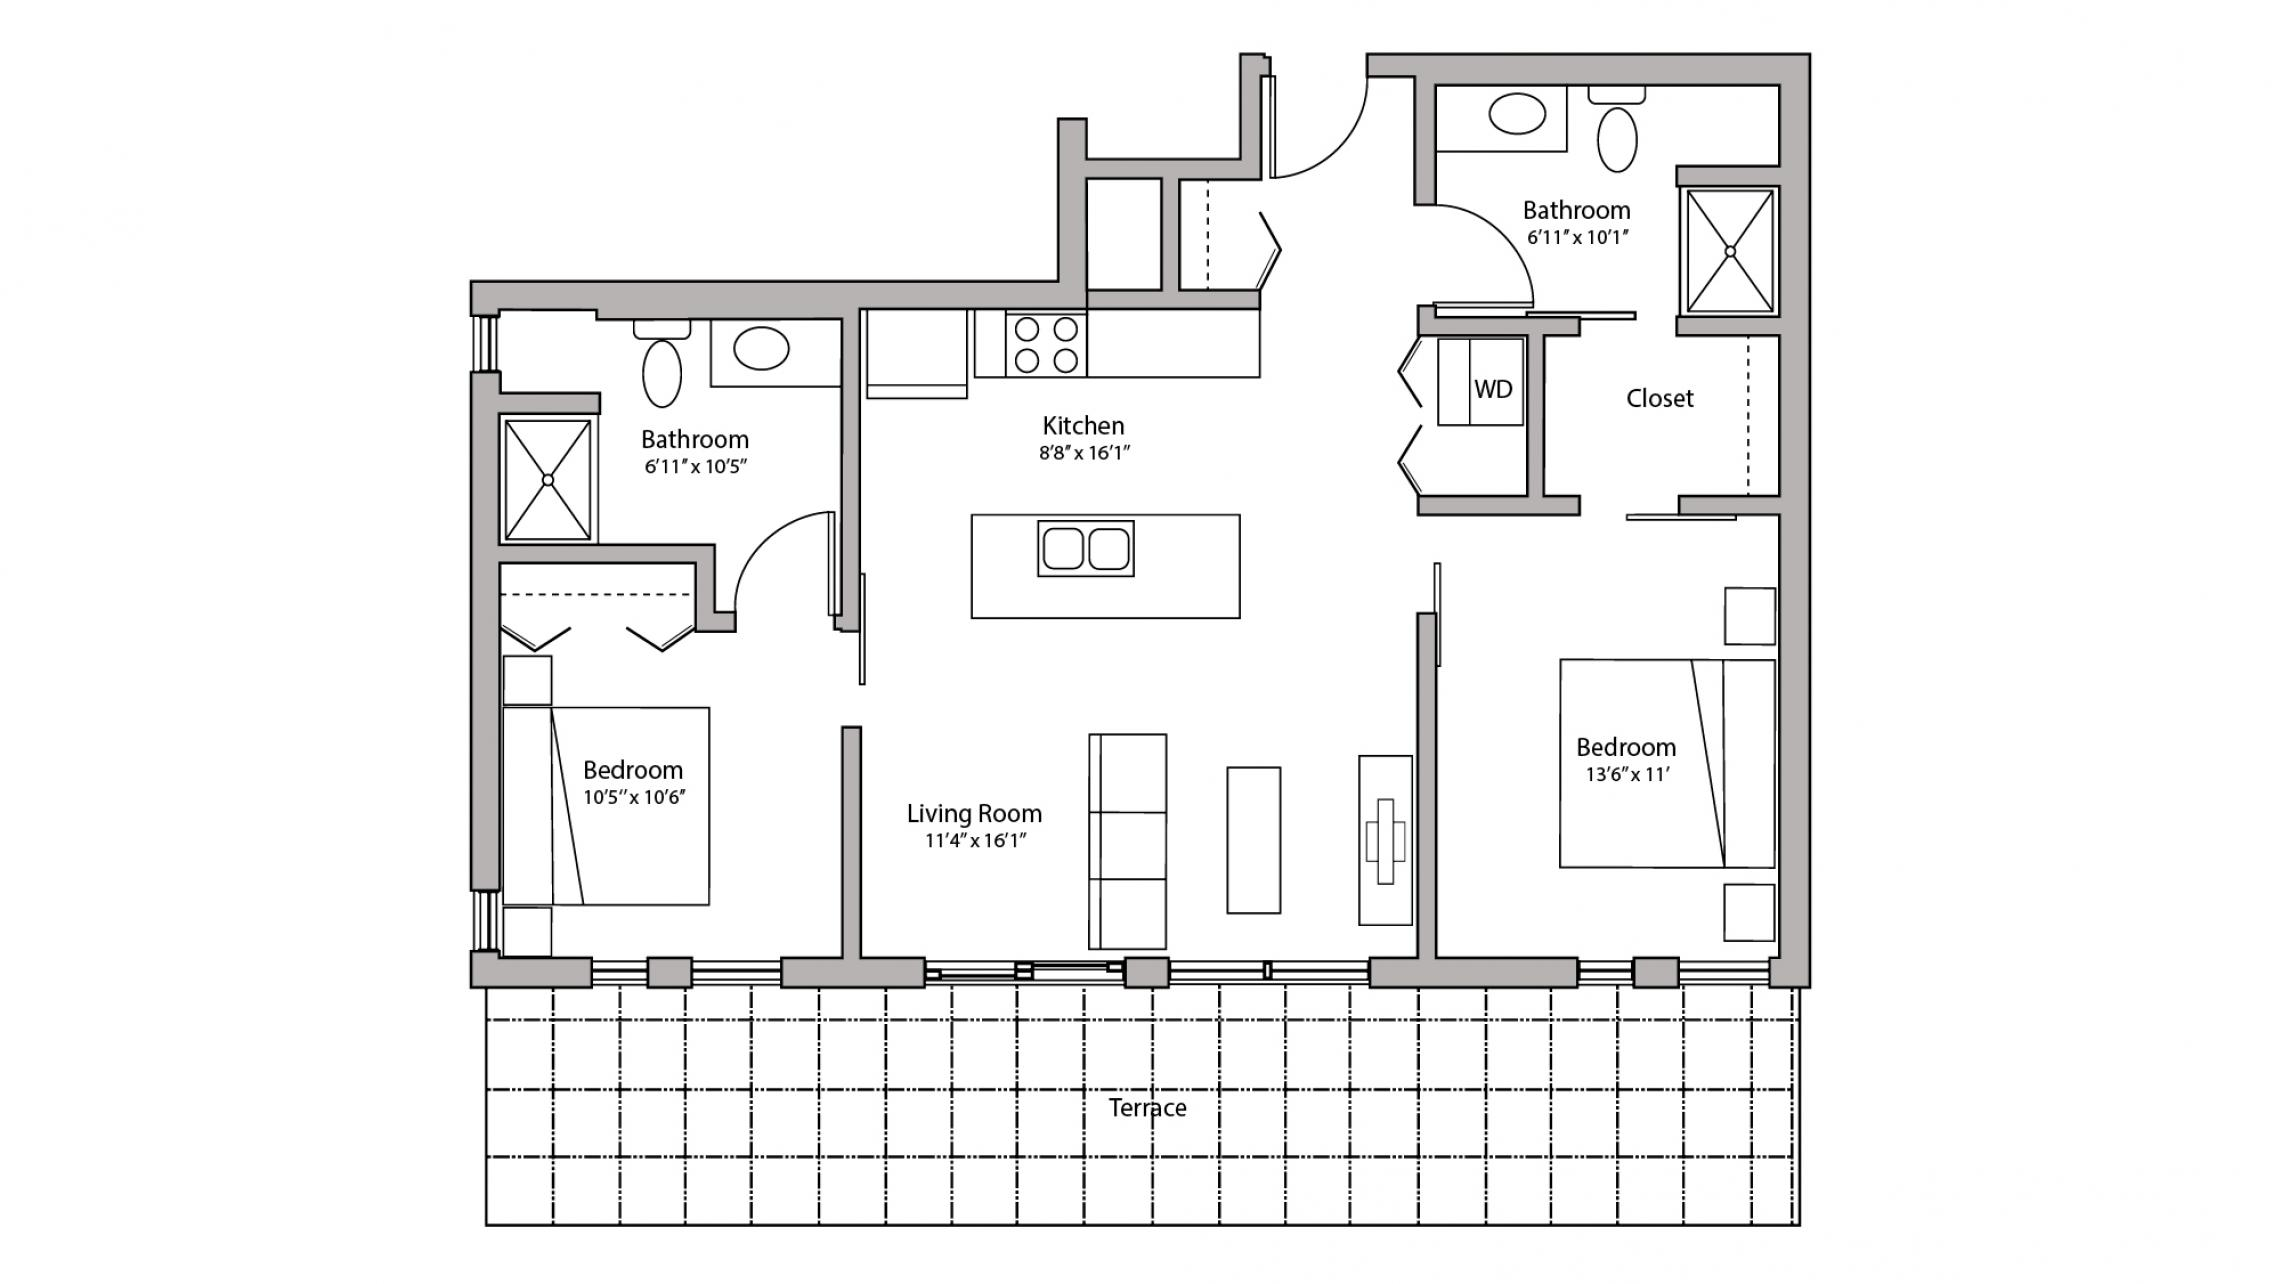 ULI Capitol Hill 503 - Two Bedroom, Two Bathroom Floorplan